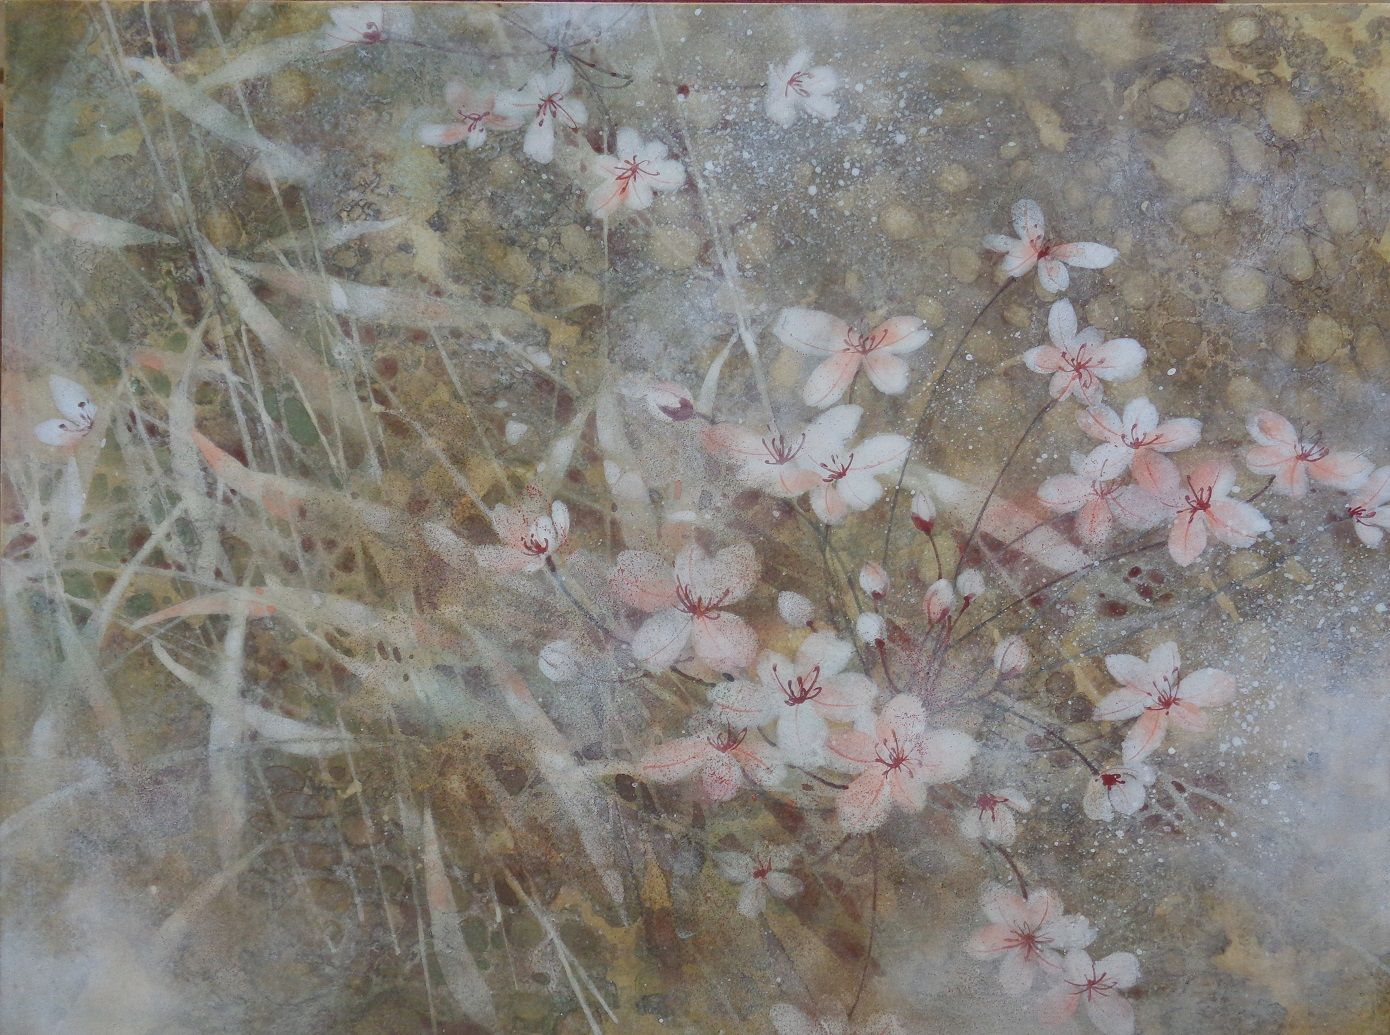 Afternoon - Chen Yiching - Contemporary painting